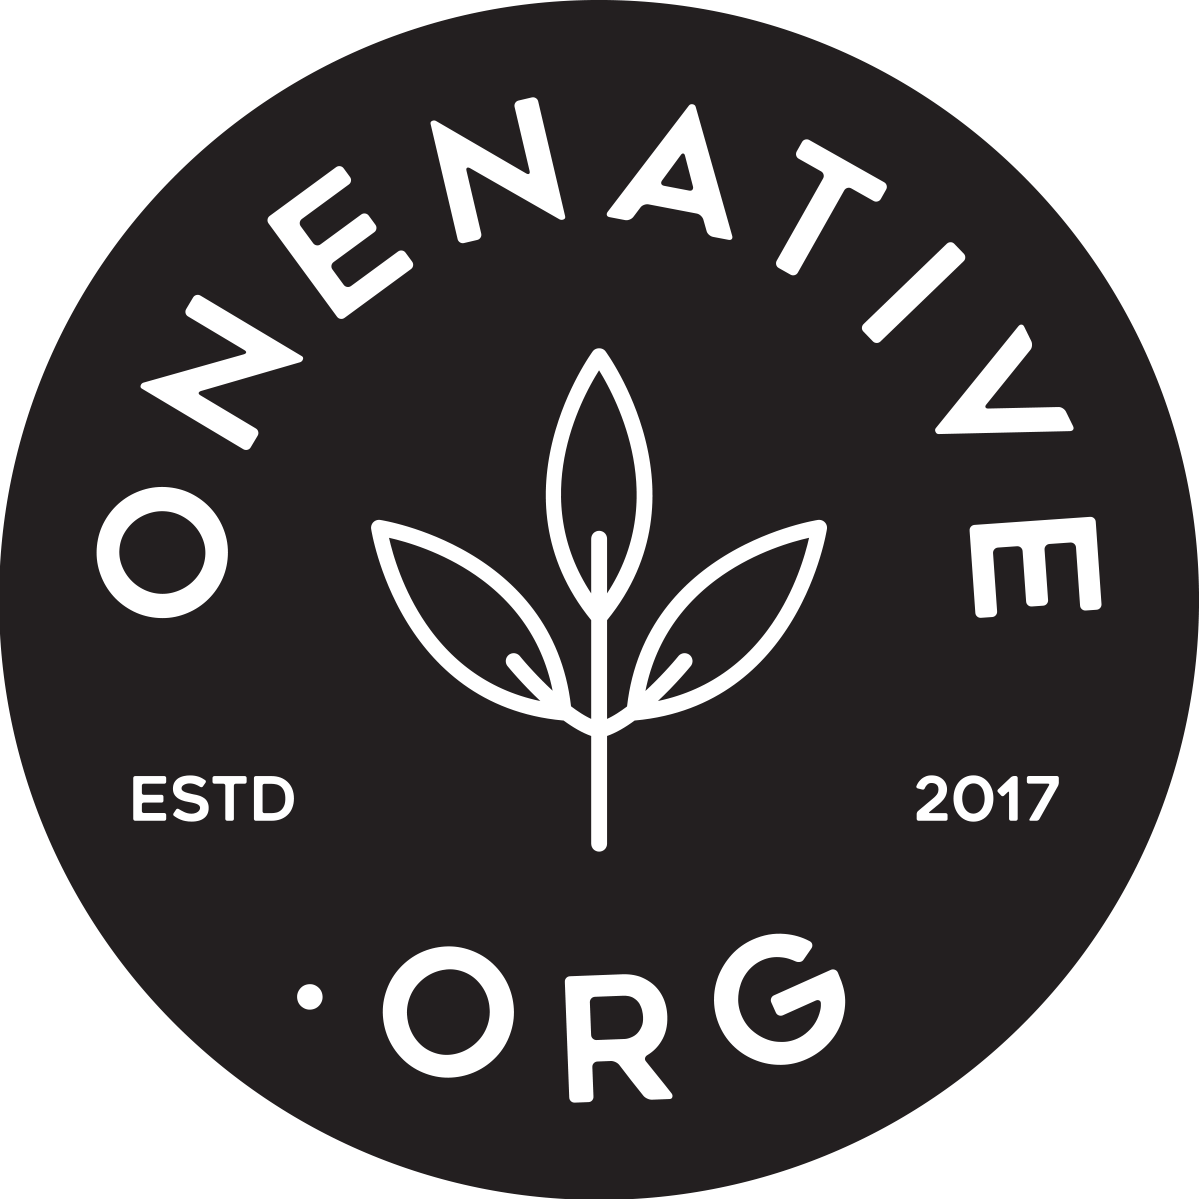 onenative.org